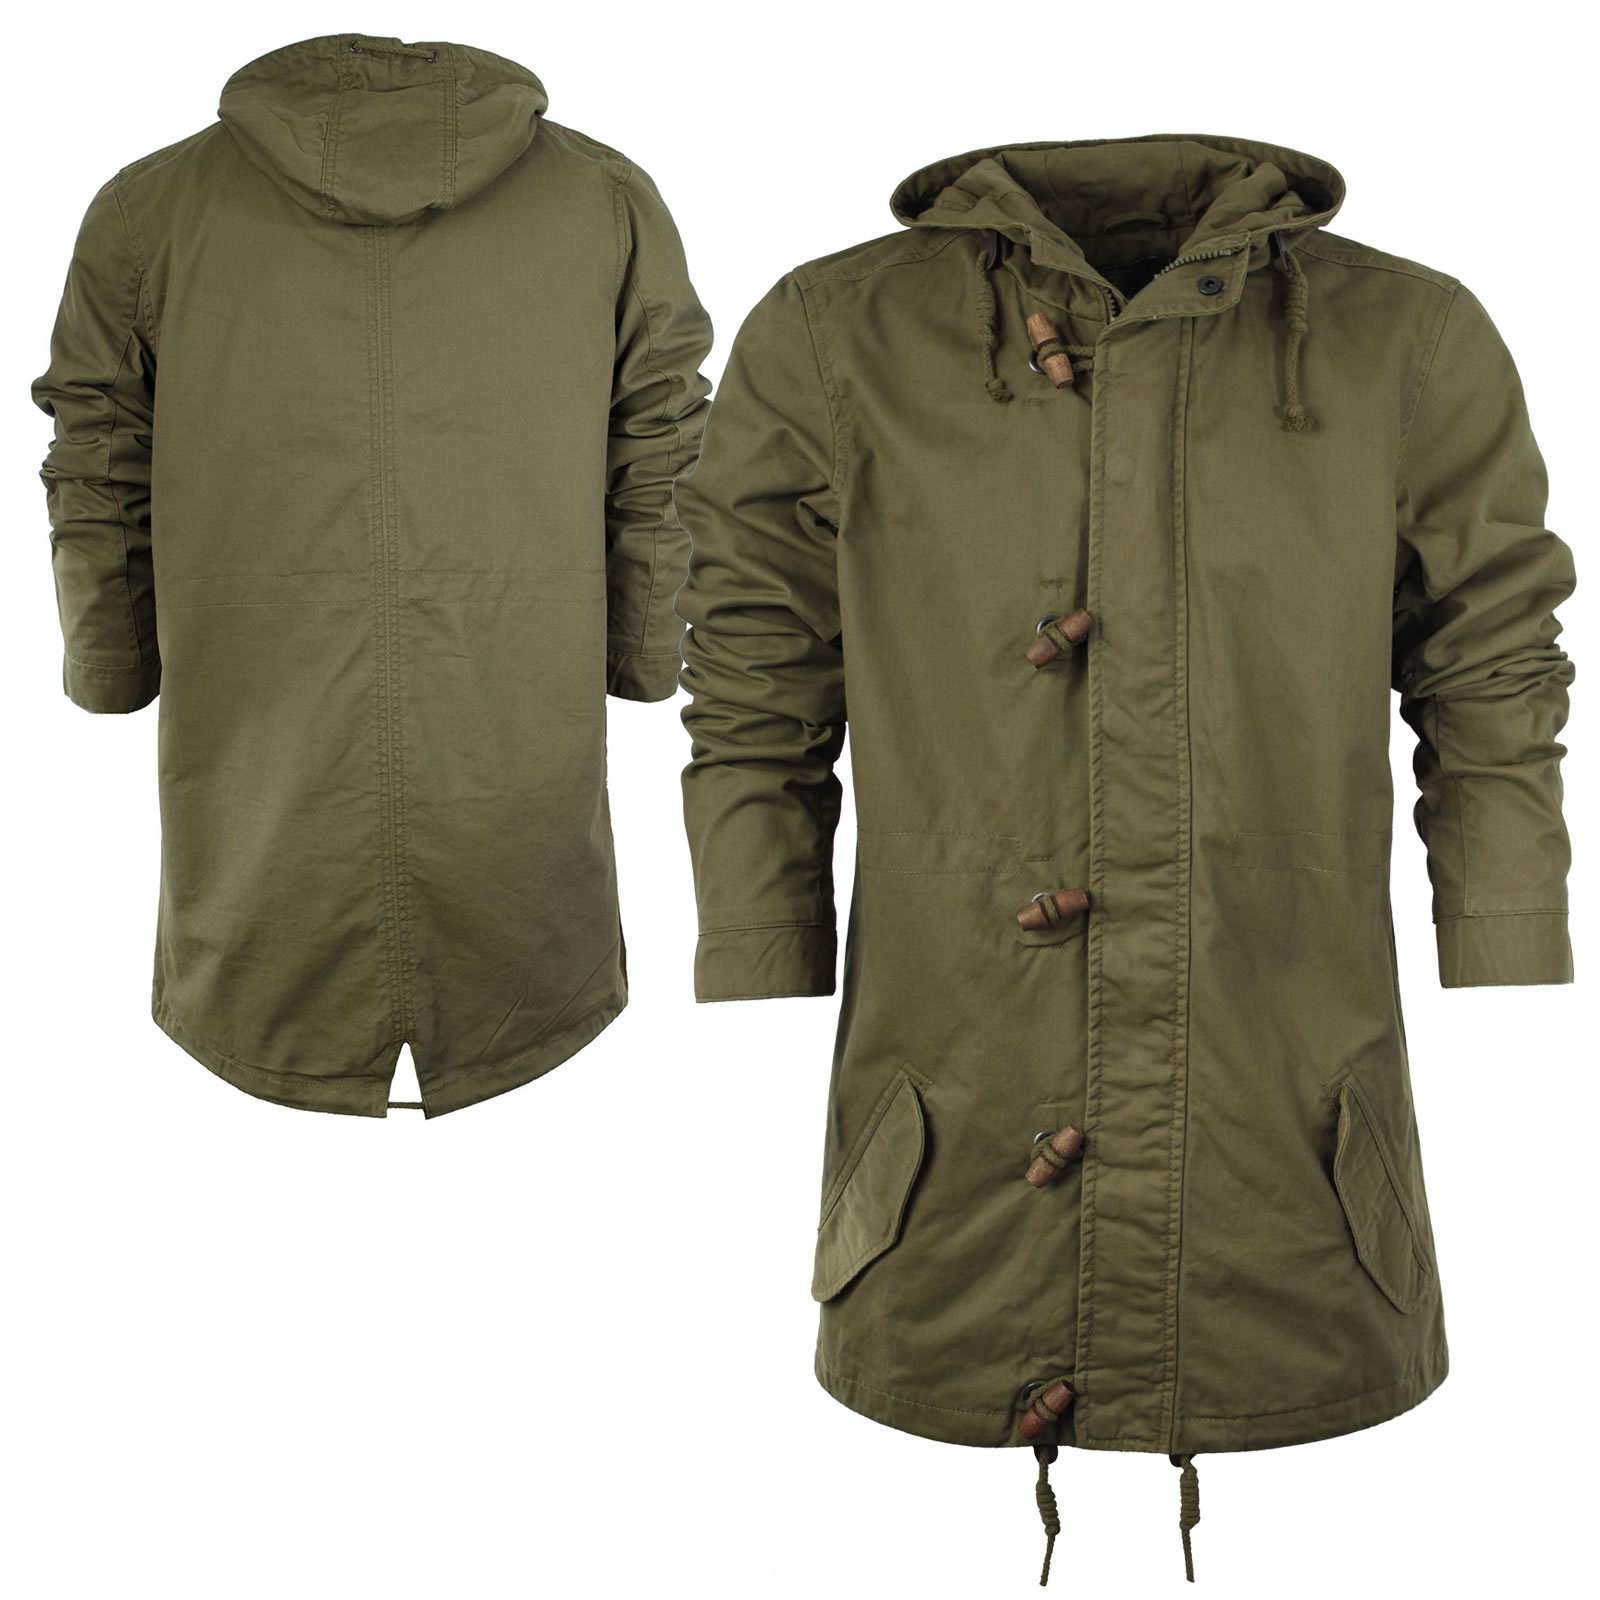 RARE SOLD OUT YEEZY STYLE FISHTAIL PARKA H&M DIVIDED MENS SIZE SMALL NEW WITHOUT TAGS. $ Brand: H&M. $ shipping. Up for sale is a H &M Faux Fur Hooded, Long Winter, Insulated Parka. Color: Olive Green. HM Mens Parka Large Coat Cotton Jacket Brown Hooded Lined. $ Free shipping.